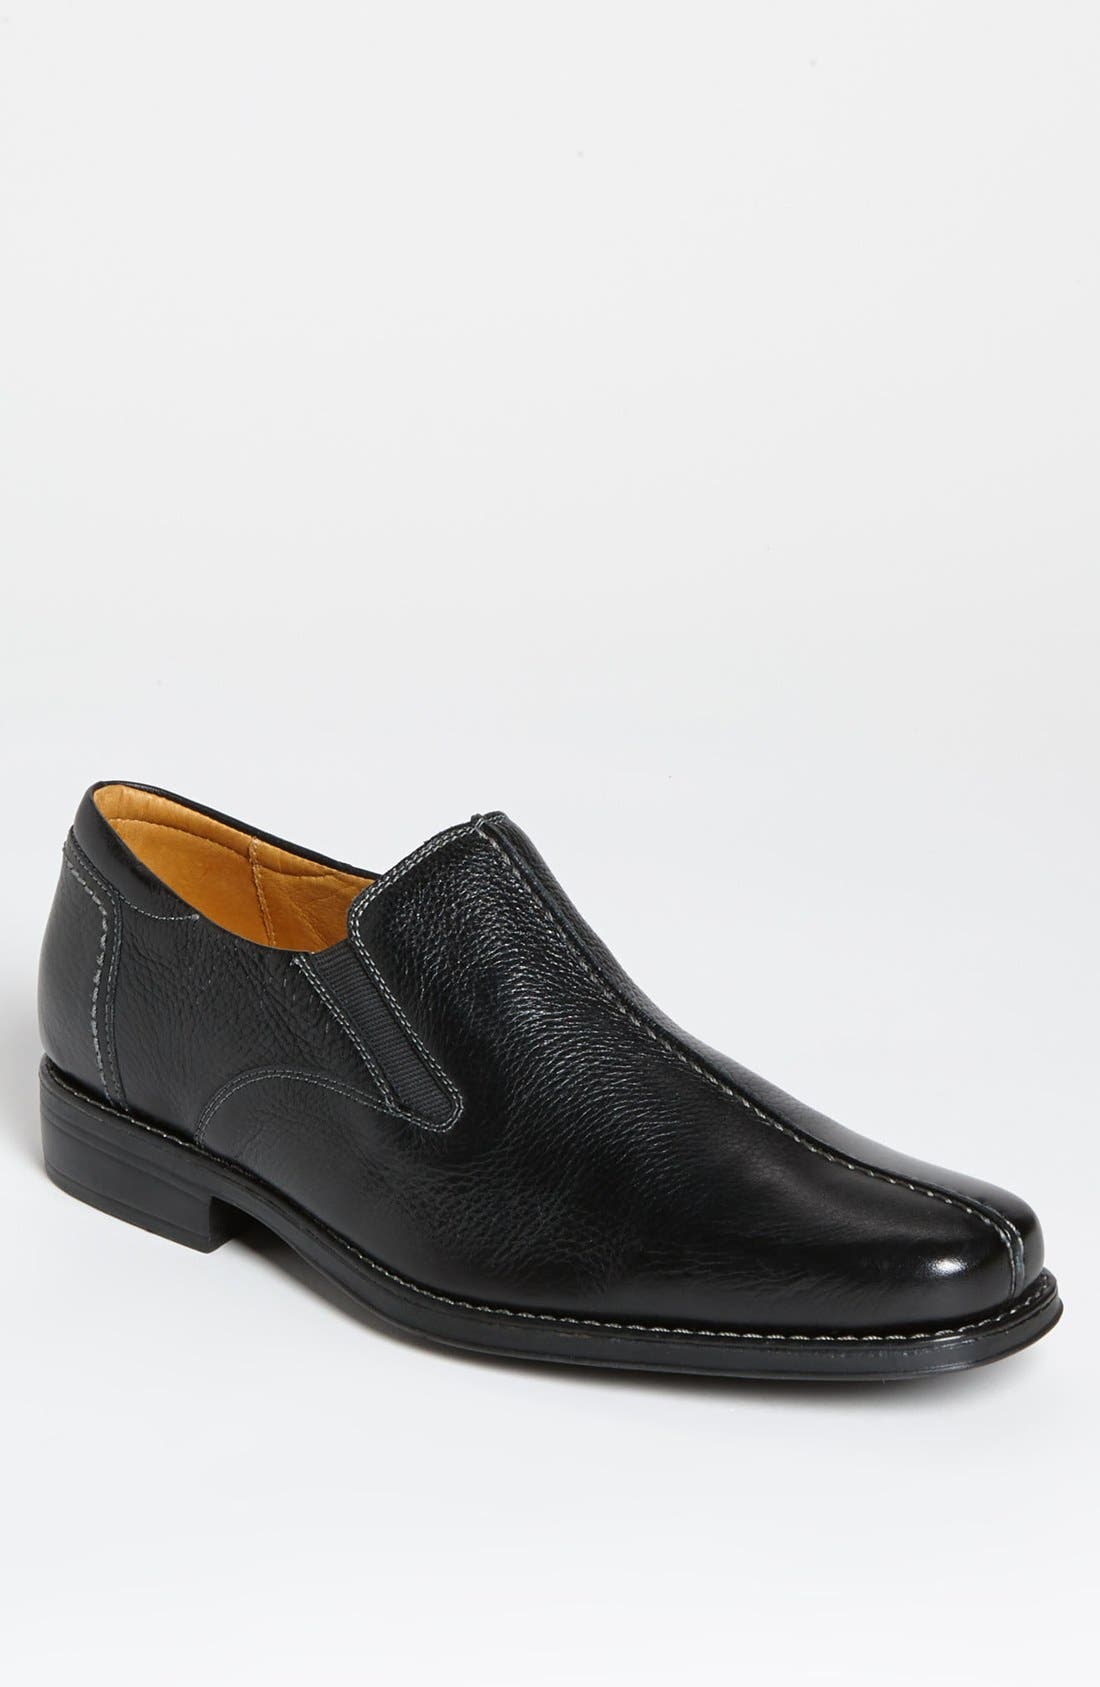 Main Image - Sandro Moscoloni 'Tampa' Loafer